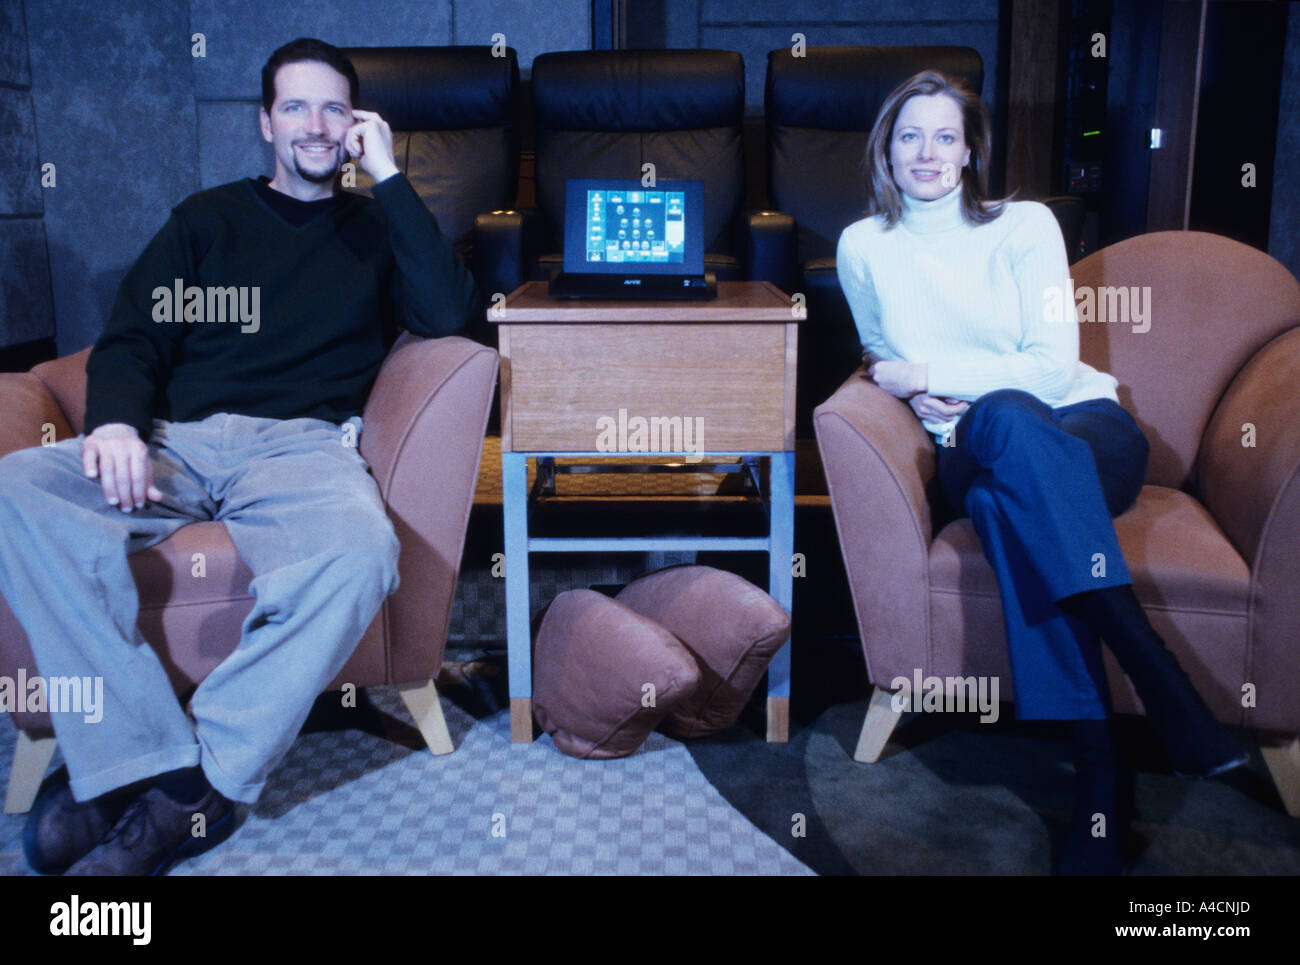 Couple in home theater - Stock Image